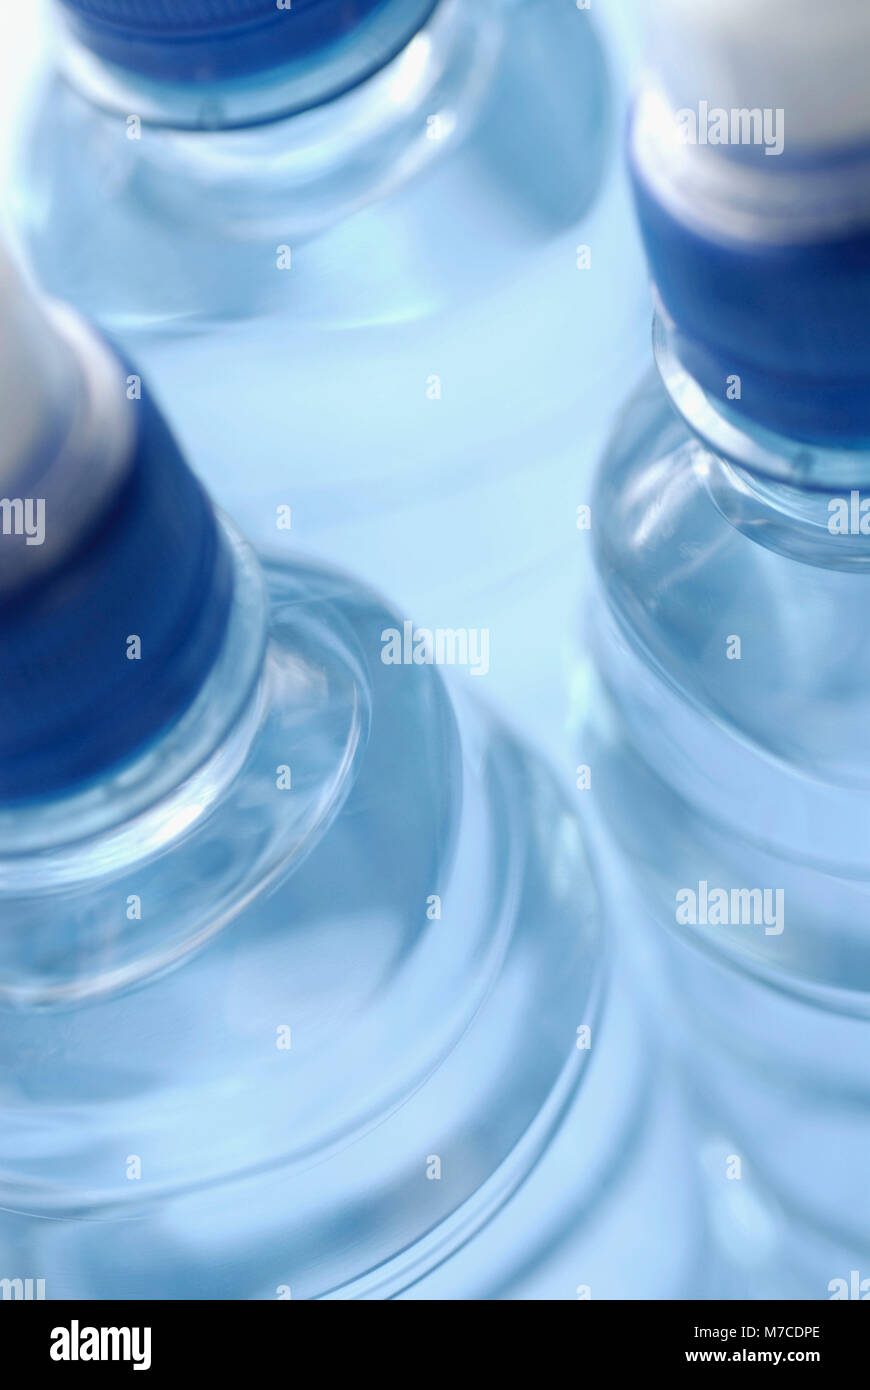 Close-up of three water bottles - Stock Image